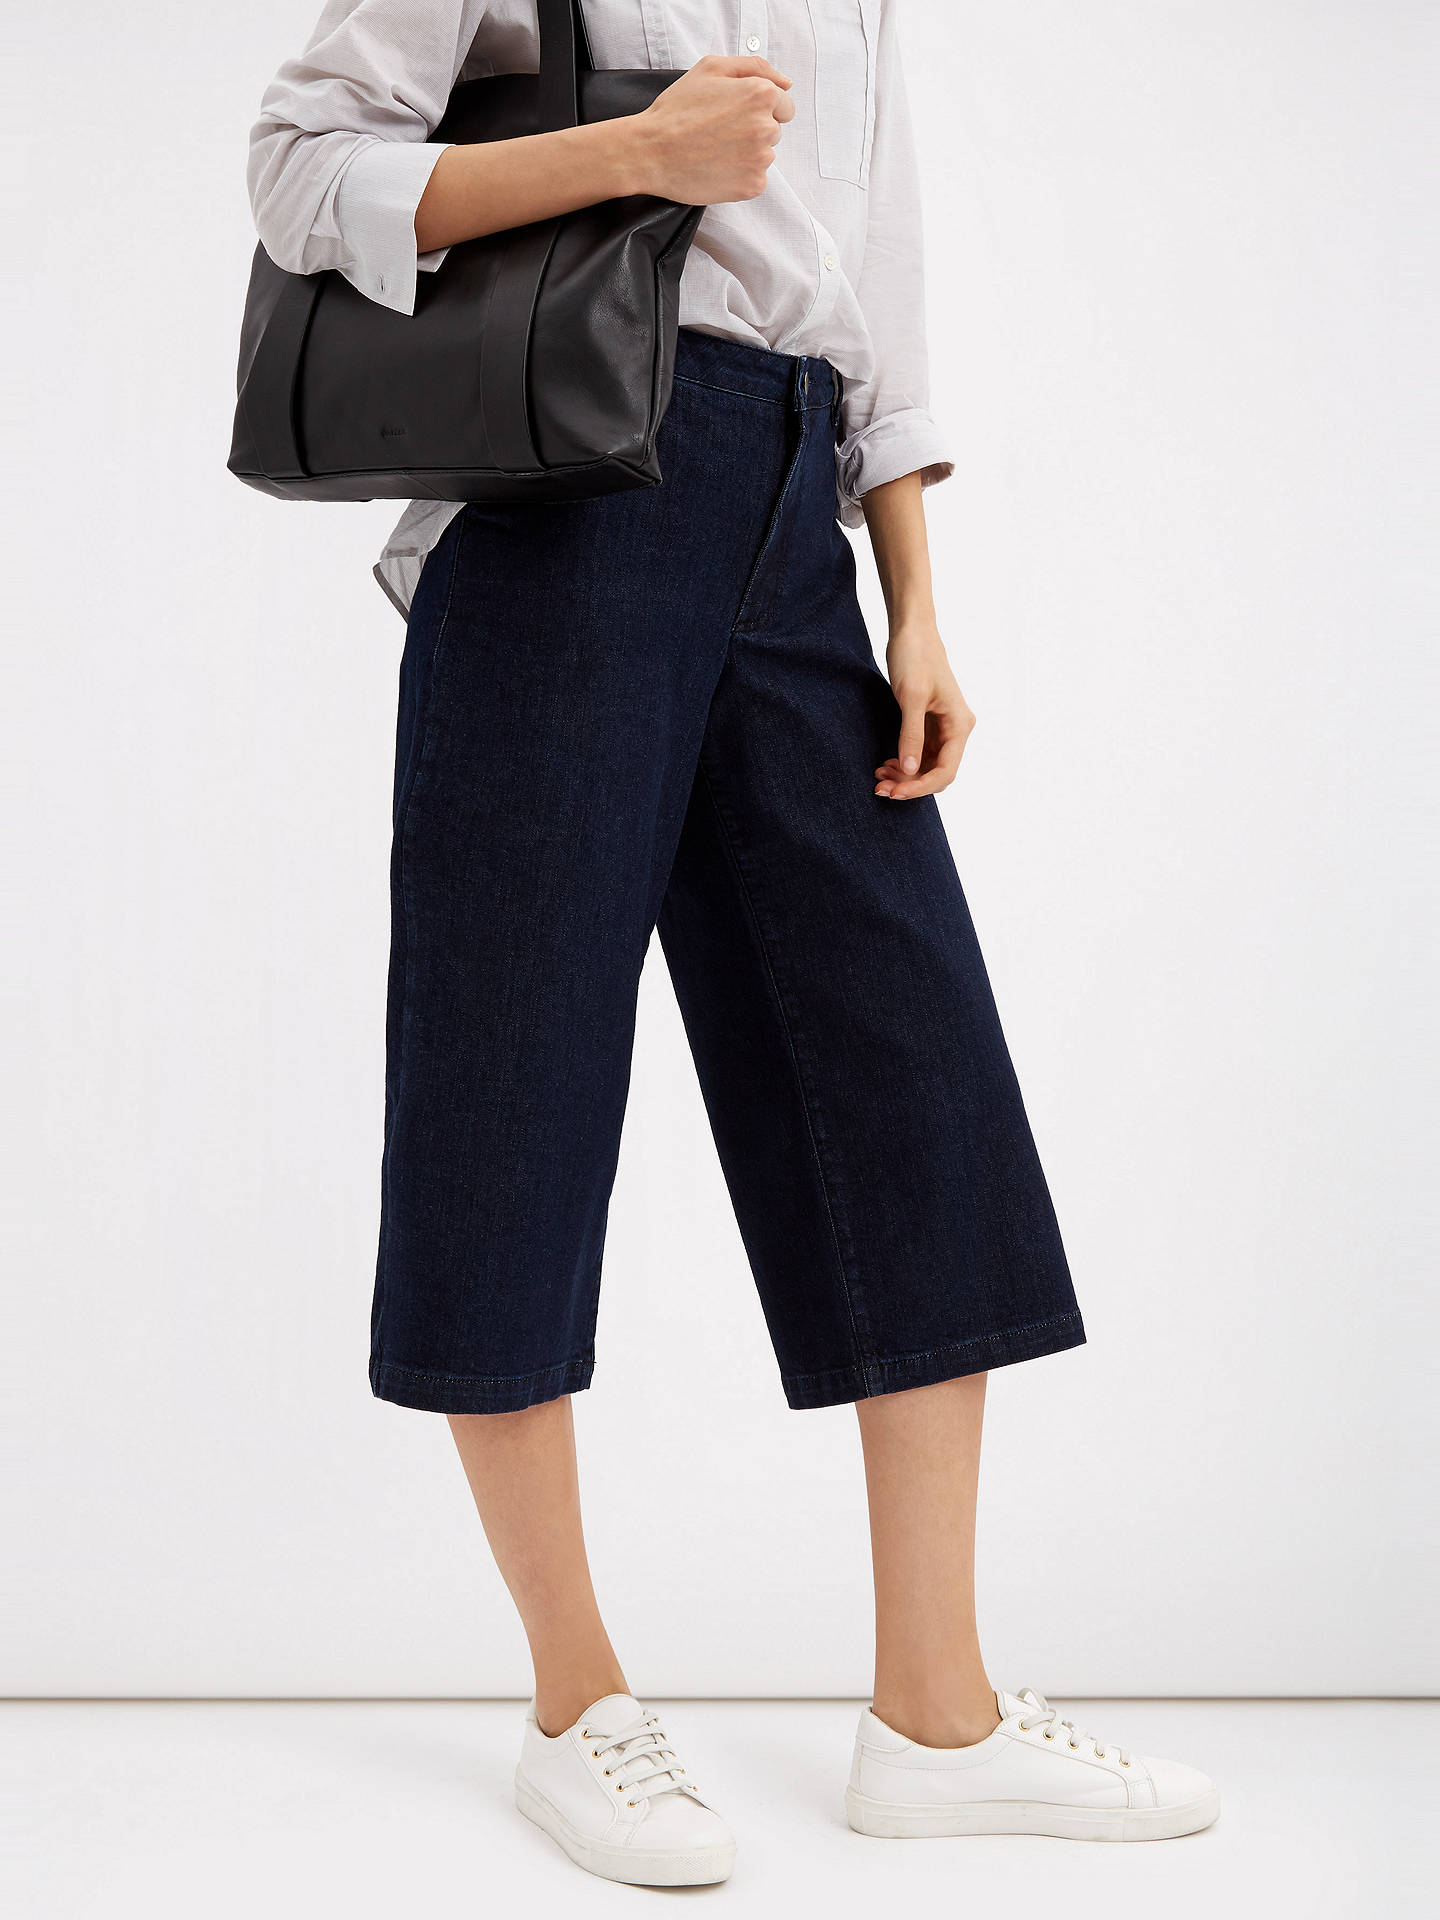 BuyJaeger Denim Culottes, Indigo, 6 Online at johnlewis.com